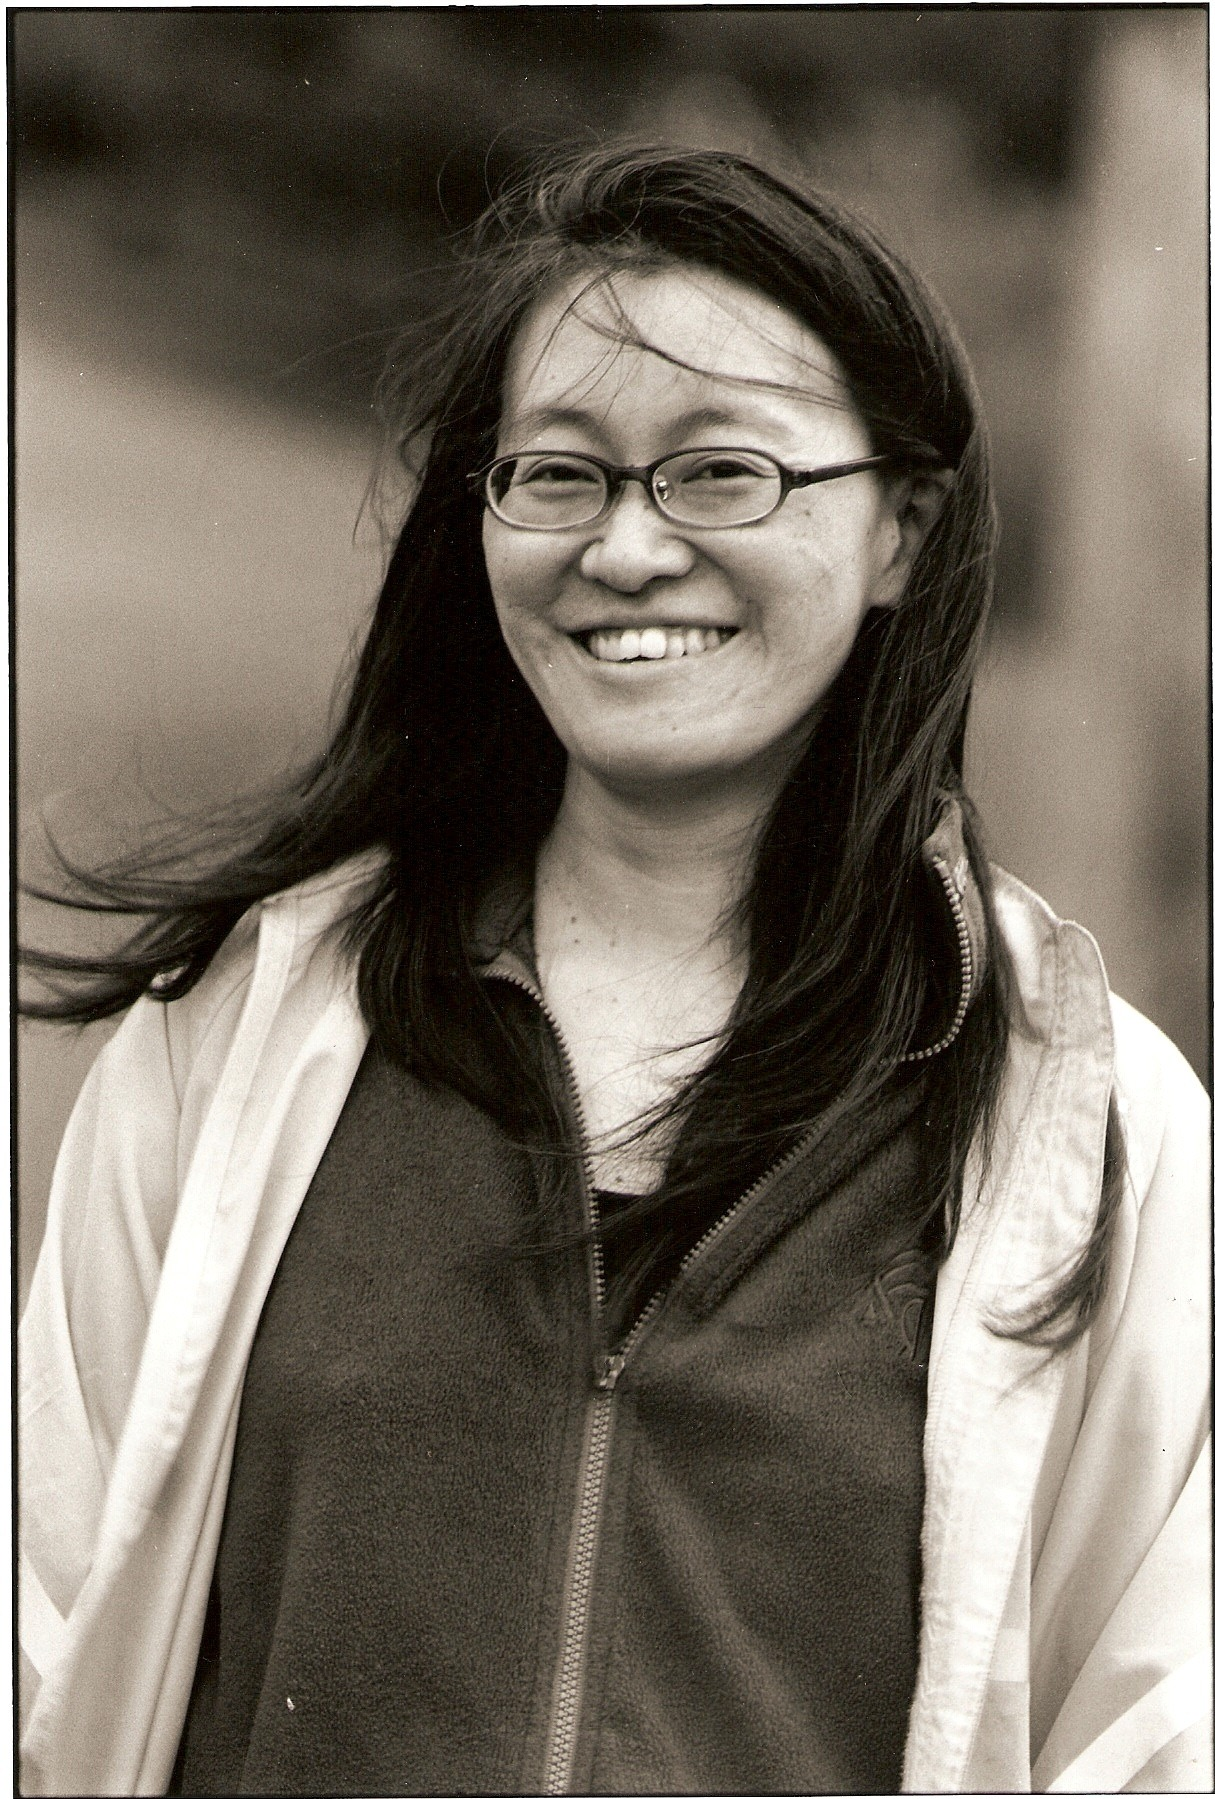 Author photo of Rita Wong.